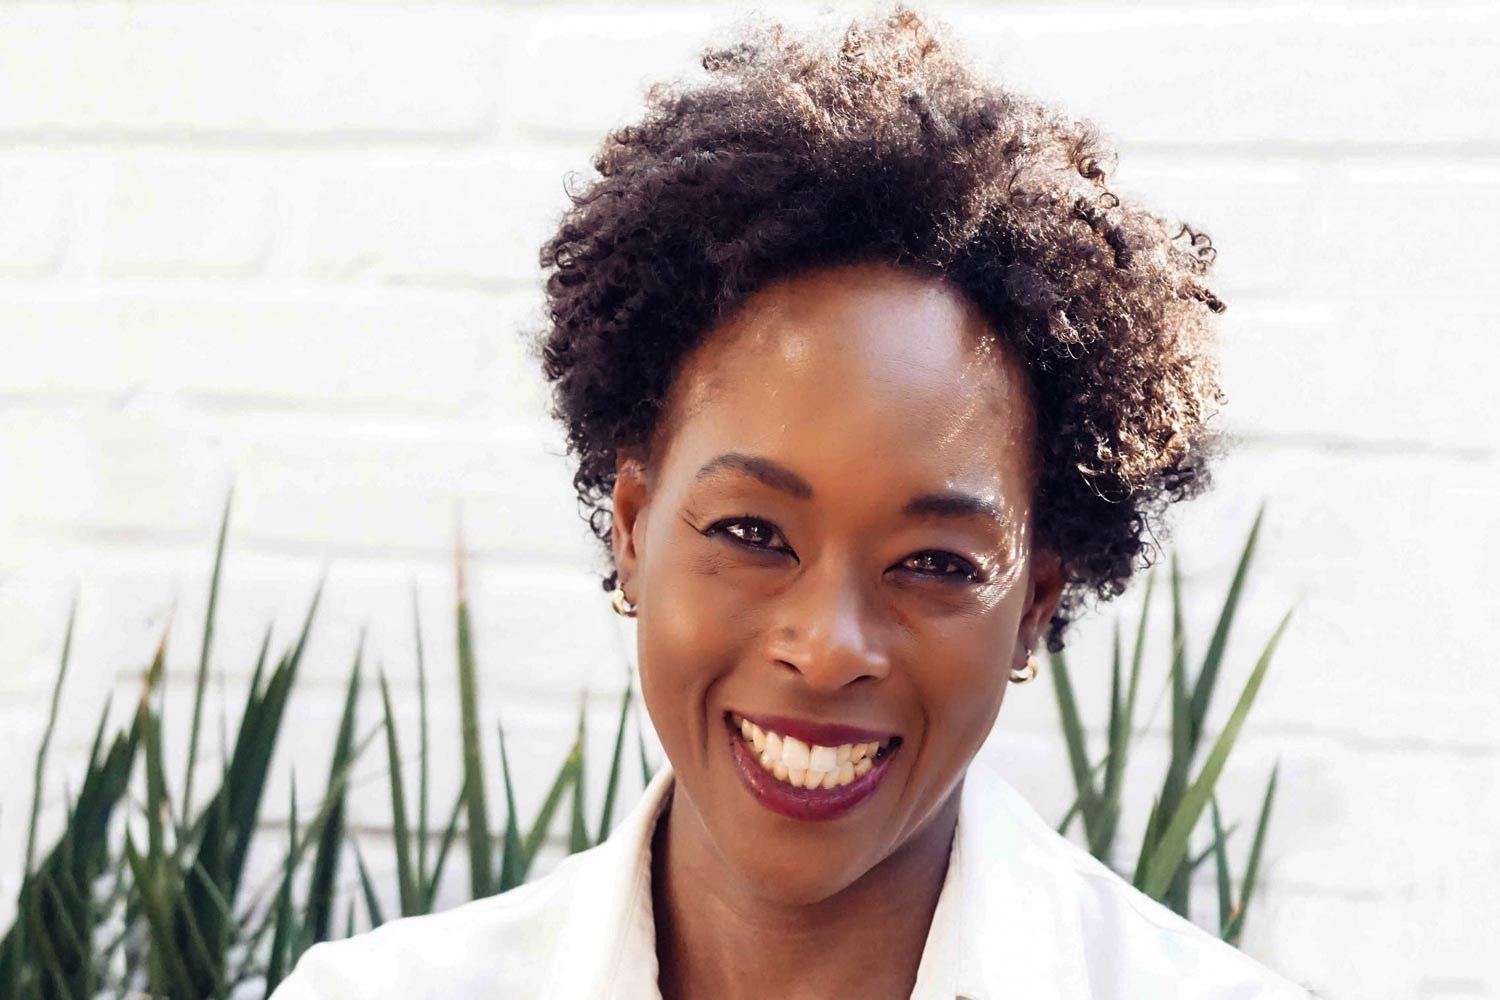 Margot Lee Shetterly said she realized a part of history was hidden in her own backyard when her father, a research scientist at NASA-Langley Research Center, told her about the black women who worked there.